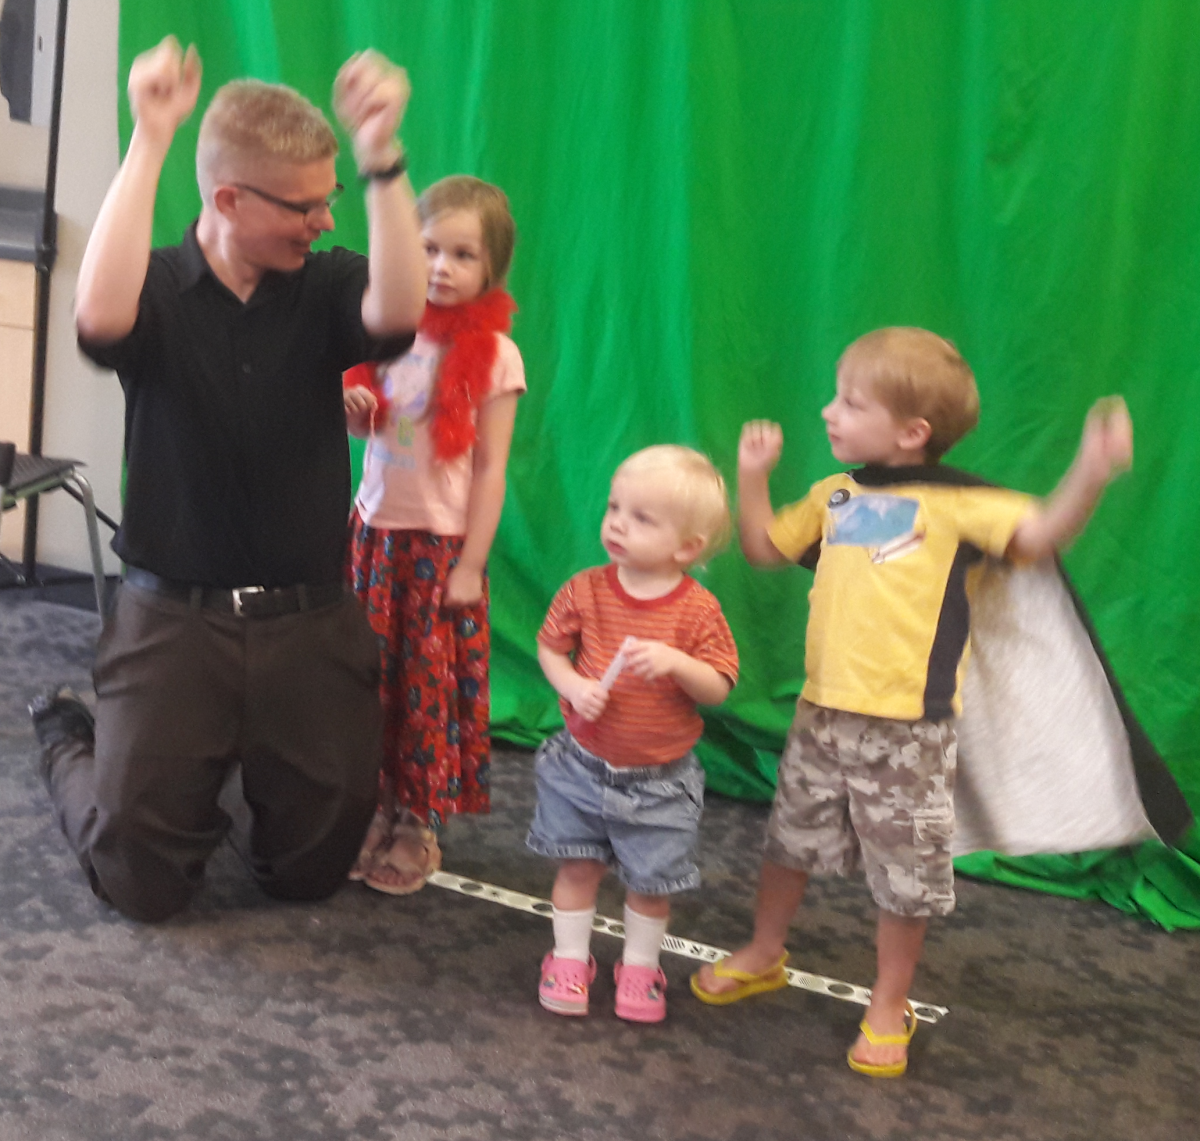 group of kids recording a music video at the library in front of a green screen